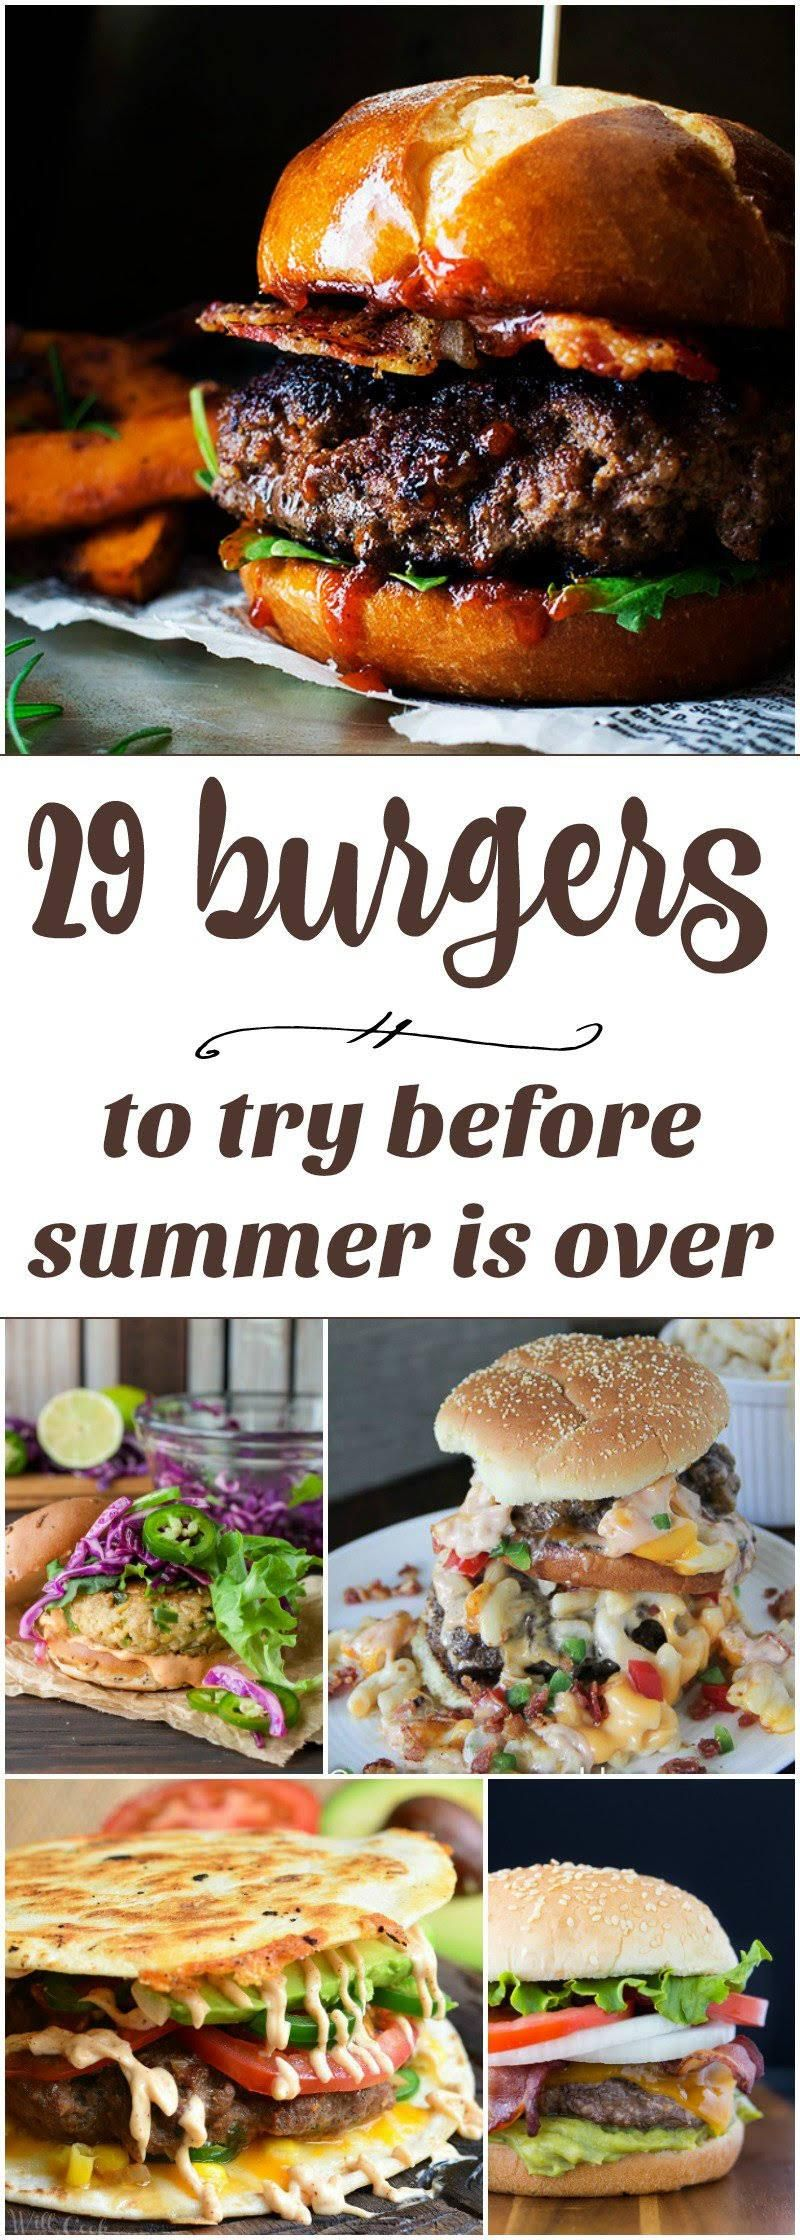 29 Burgers To Try Before Summer Is Over